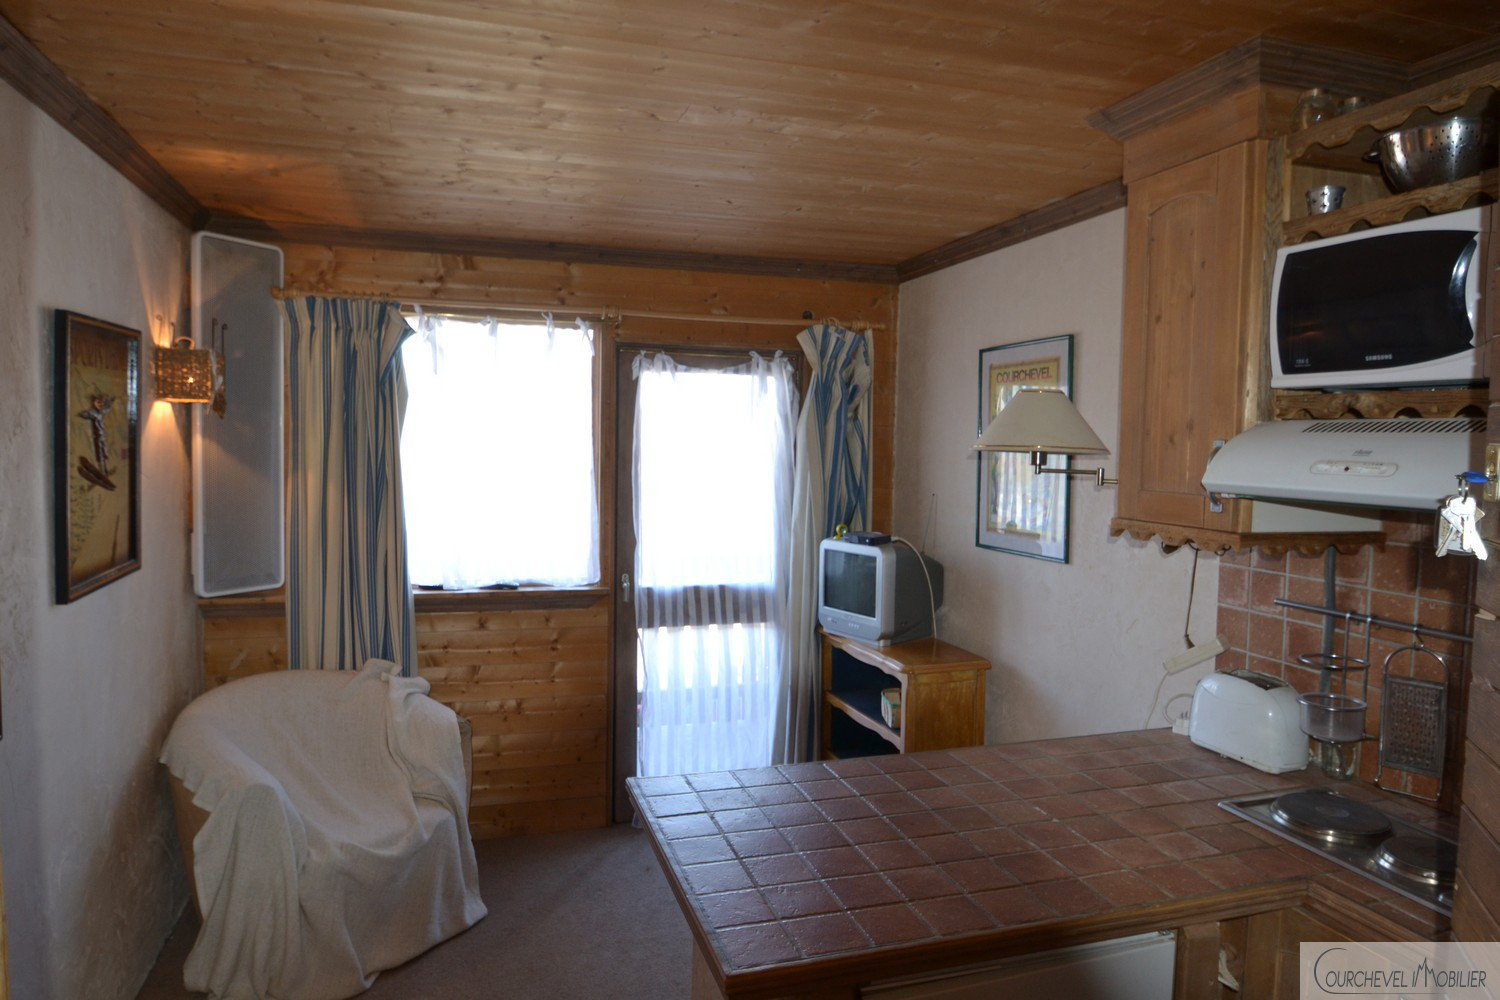 Location Studio - Courchevel Village